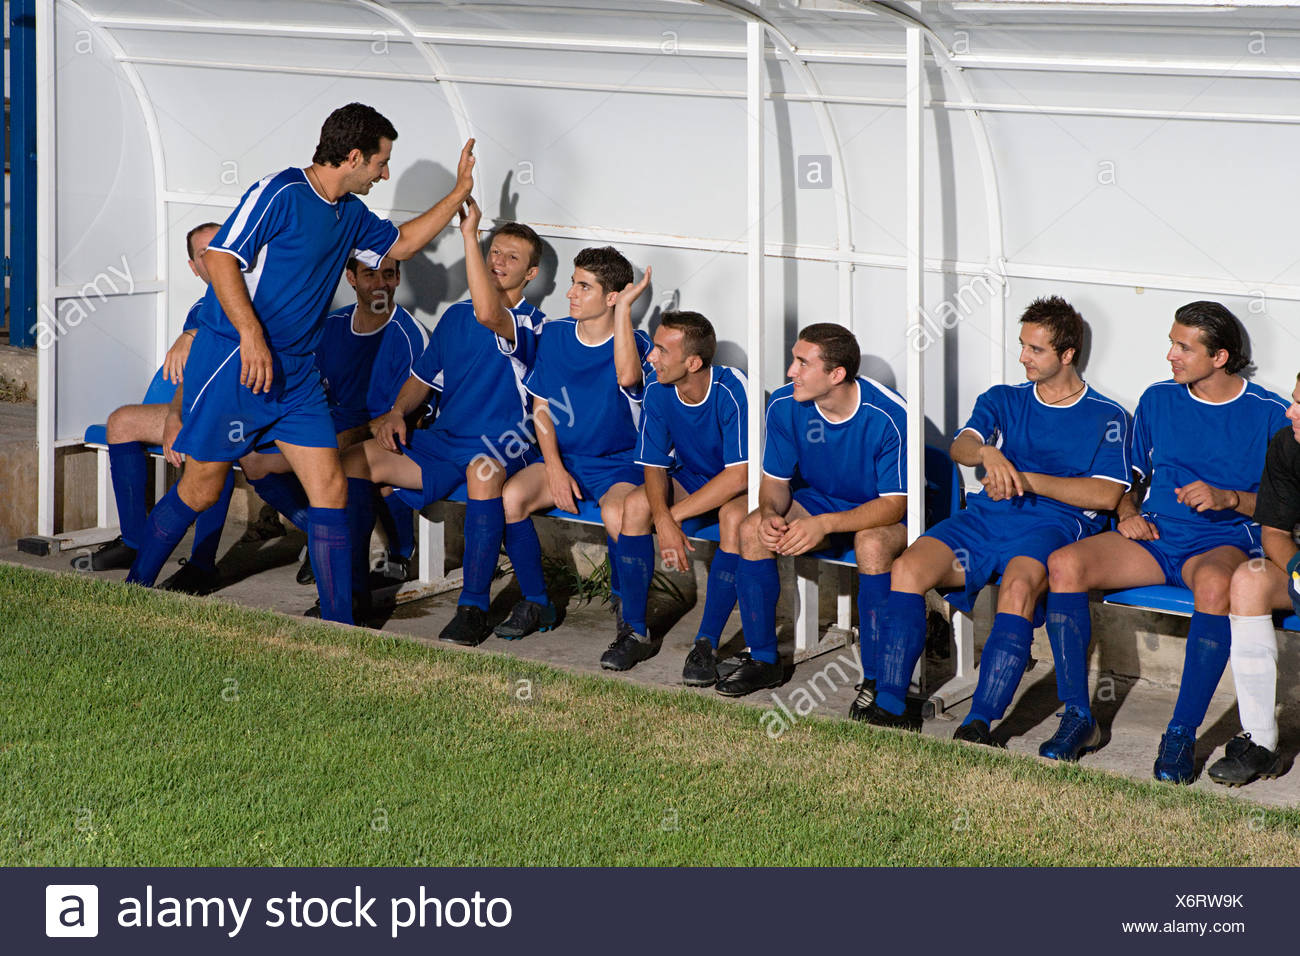 Footballer celebrating with team mates - Stock Image